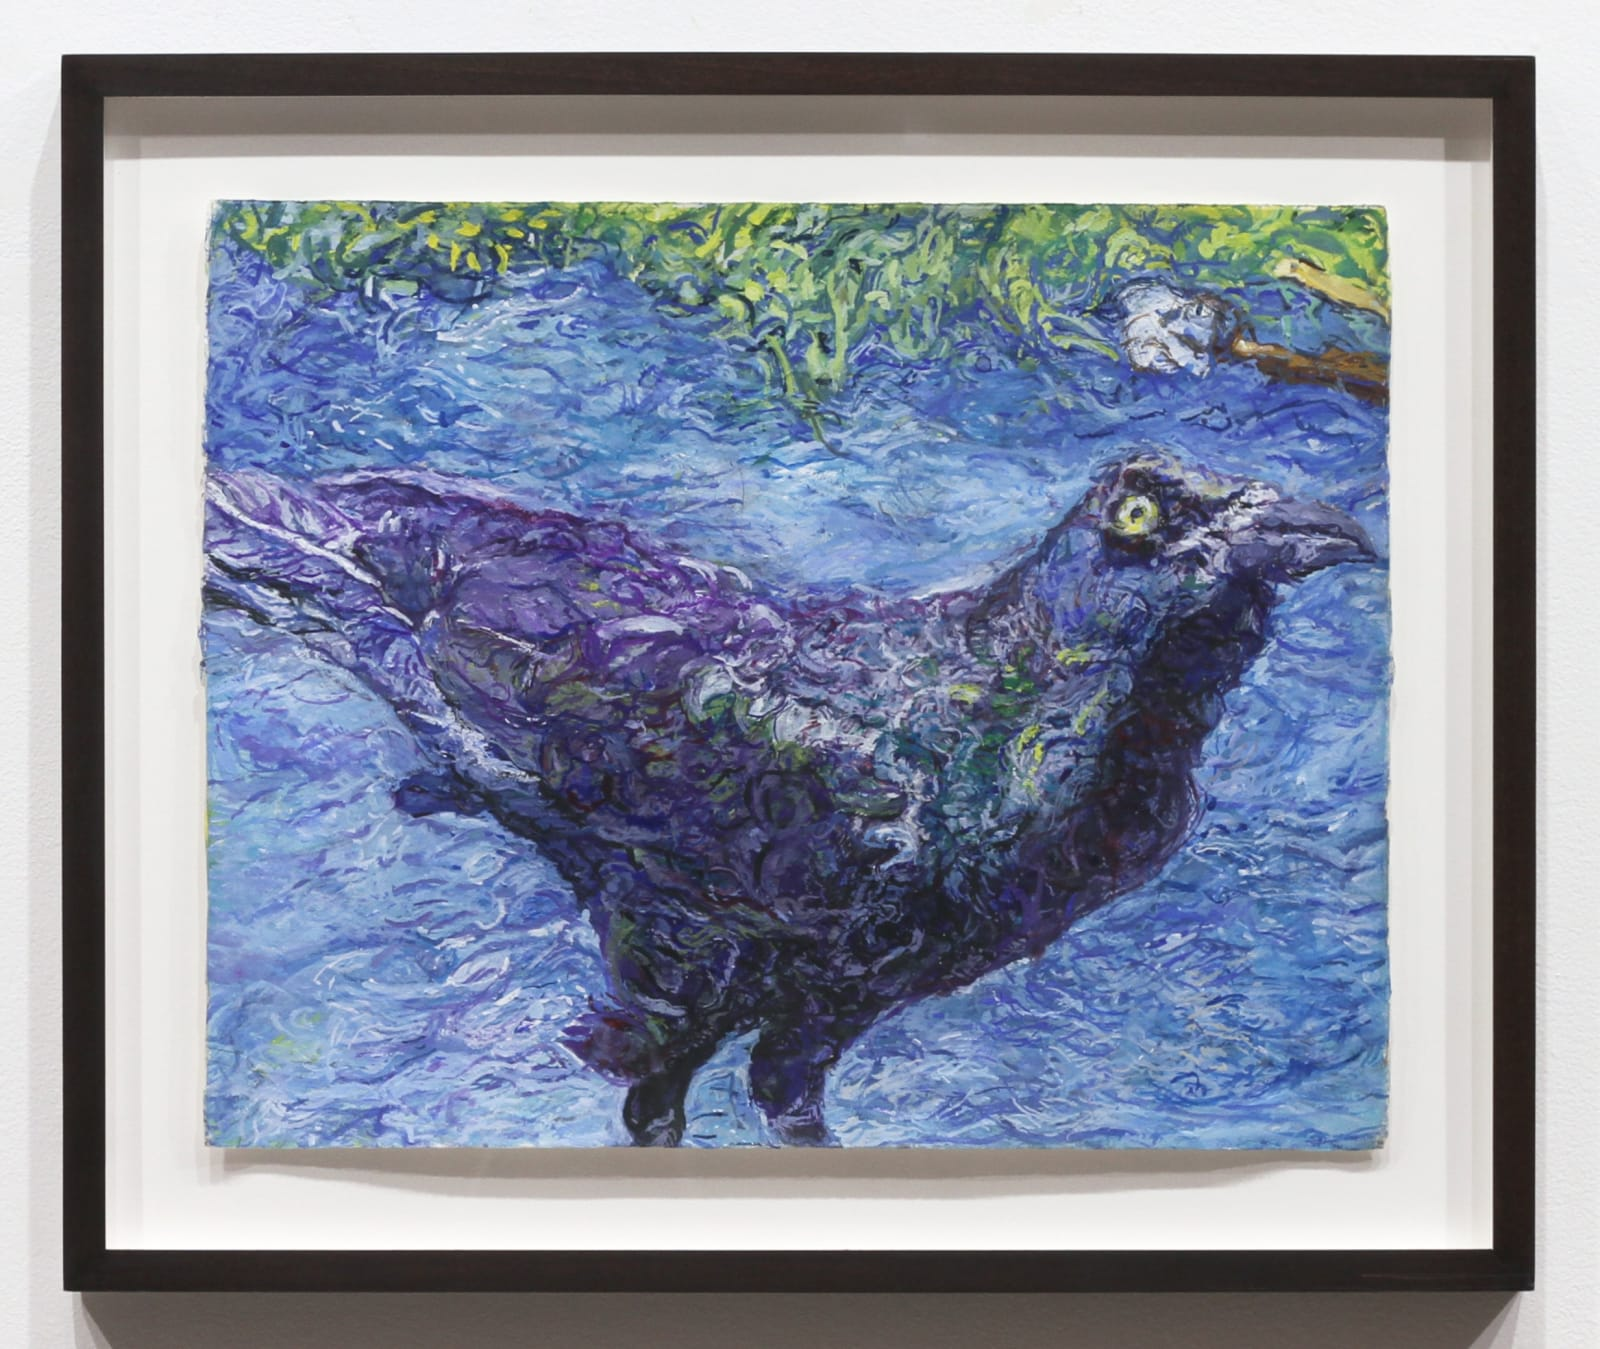 Beth Secor, Grackle, Flood, 2017 gouache, watercolor, and pencil on paper, 16 1/8 x 20 1/8 in